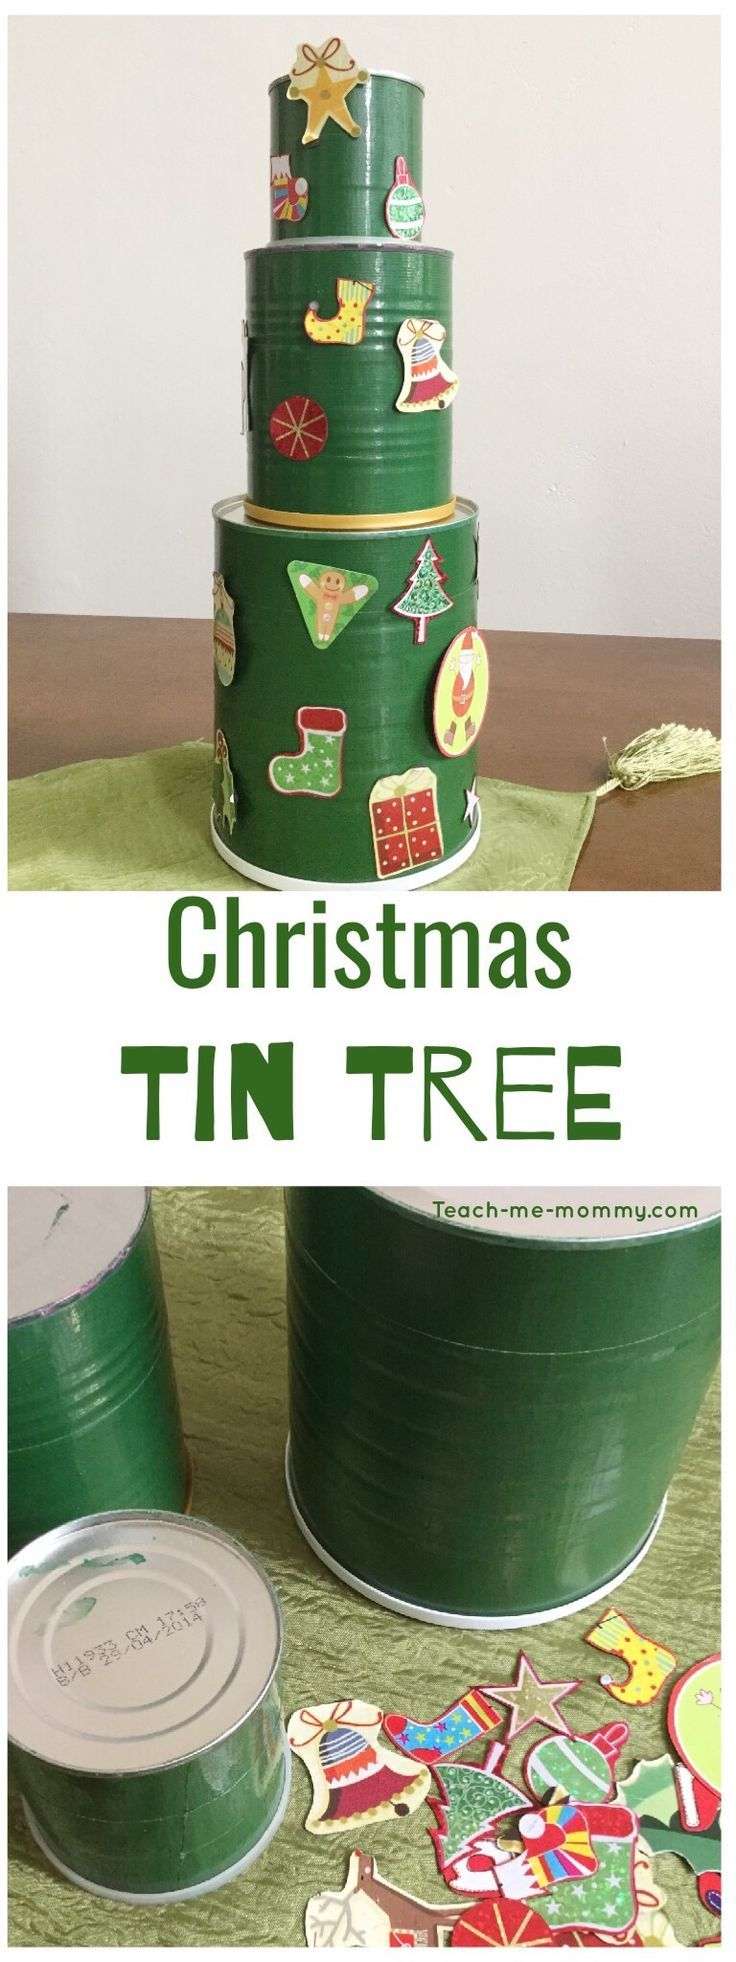 Christmas Tin tree, stackable and travel-friendly too!